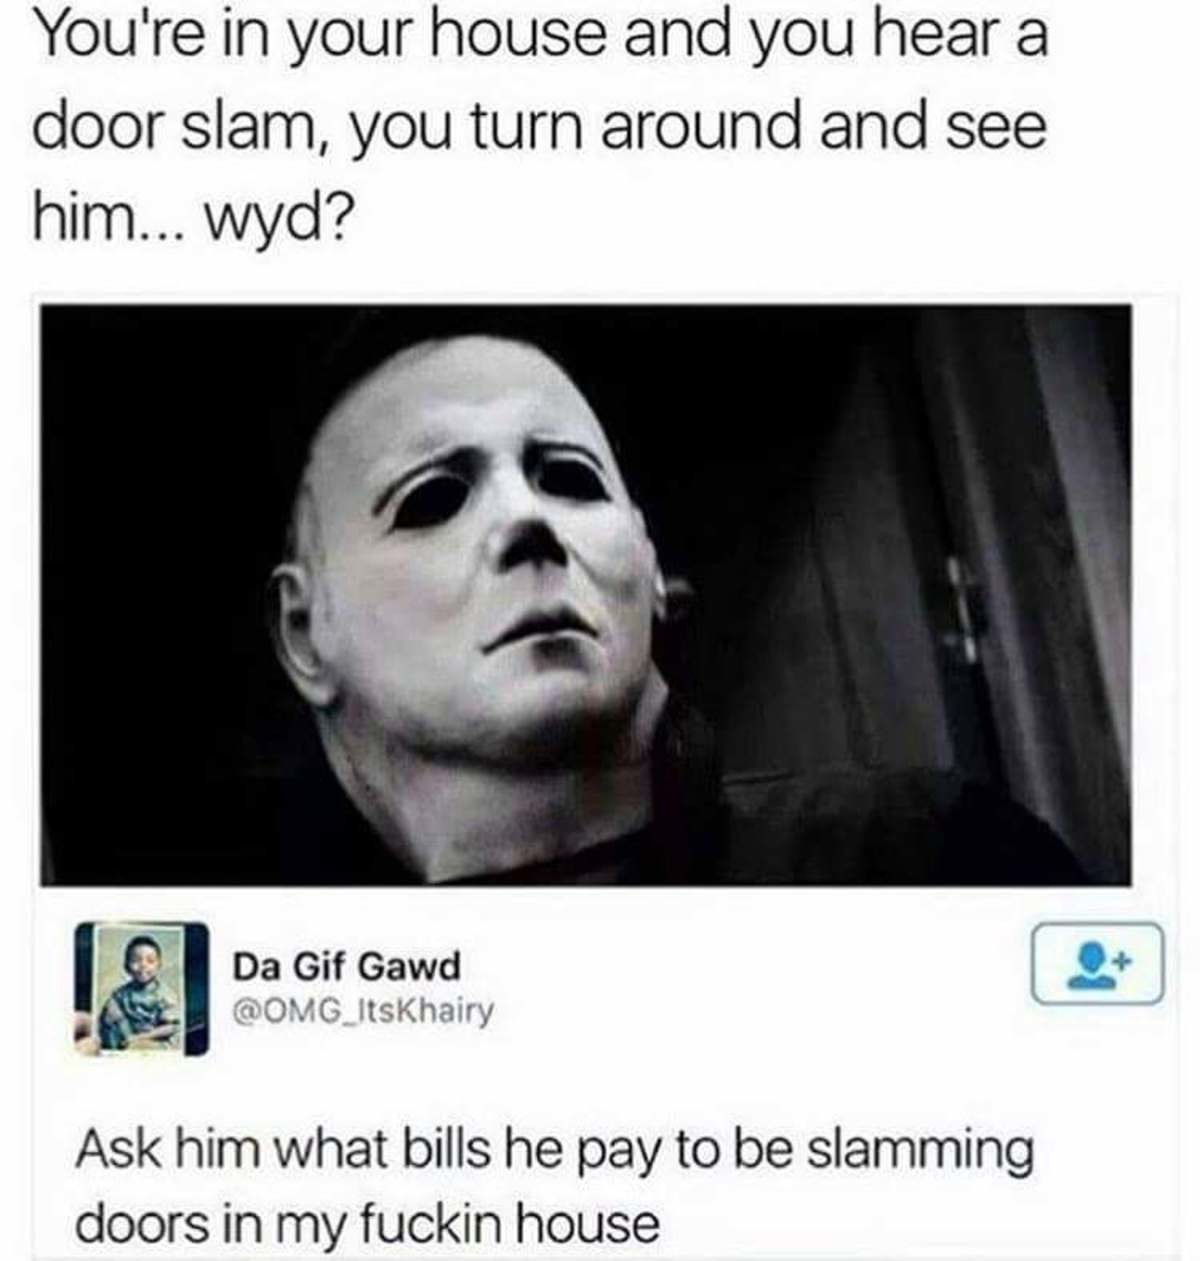 The audacity. . it' in your house and you hear a door slam, l/ turn around and see Gif Gawd Jlt, t Ask him what bills he pay to be slamming doors in rny fuckin